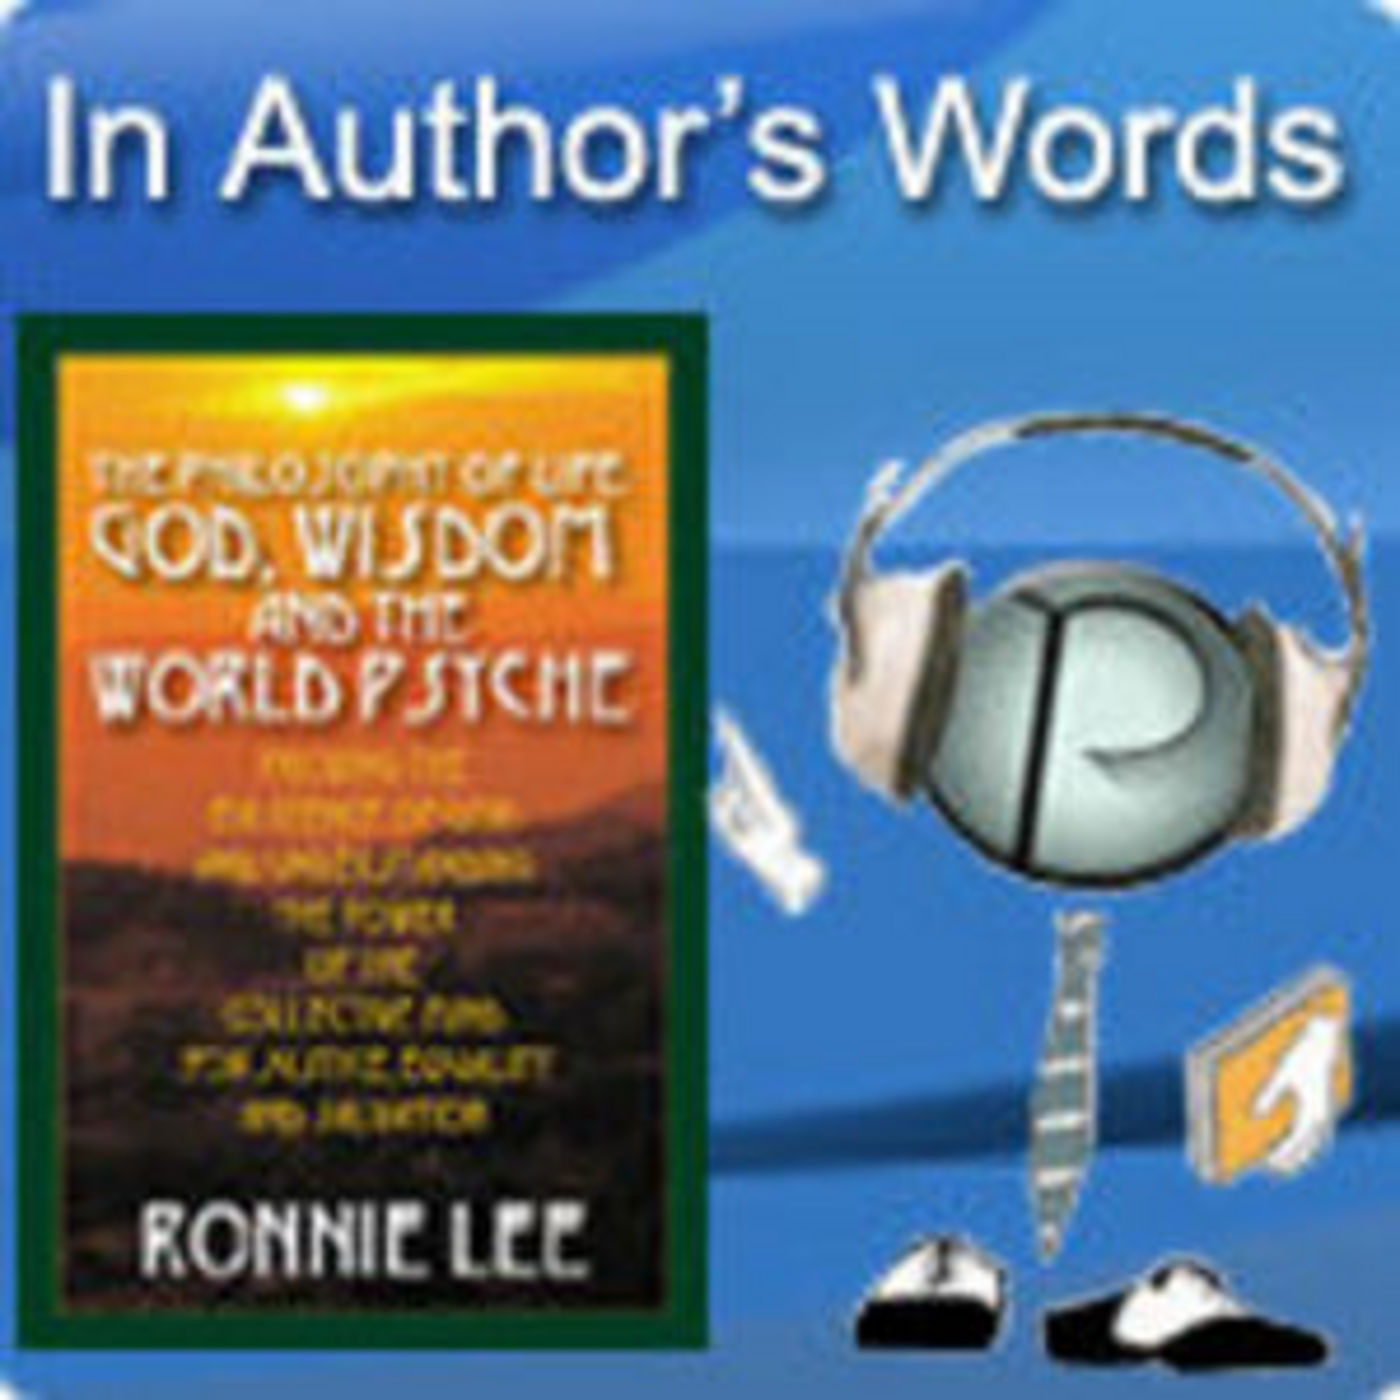 The Philosophy Of Life by Ronnie Lee